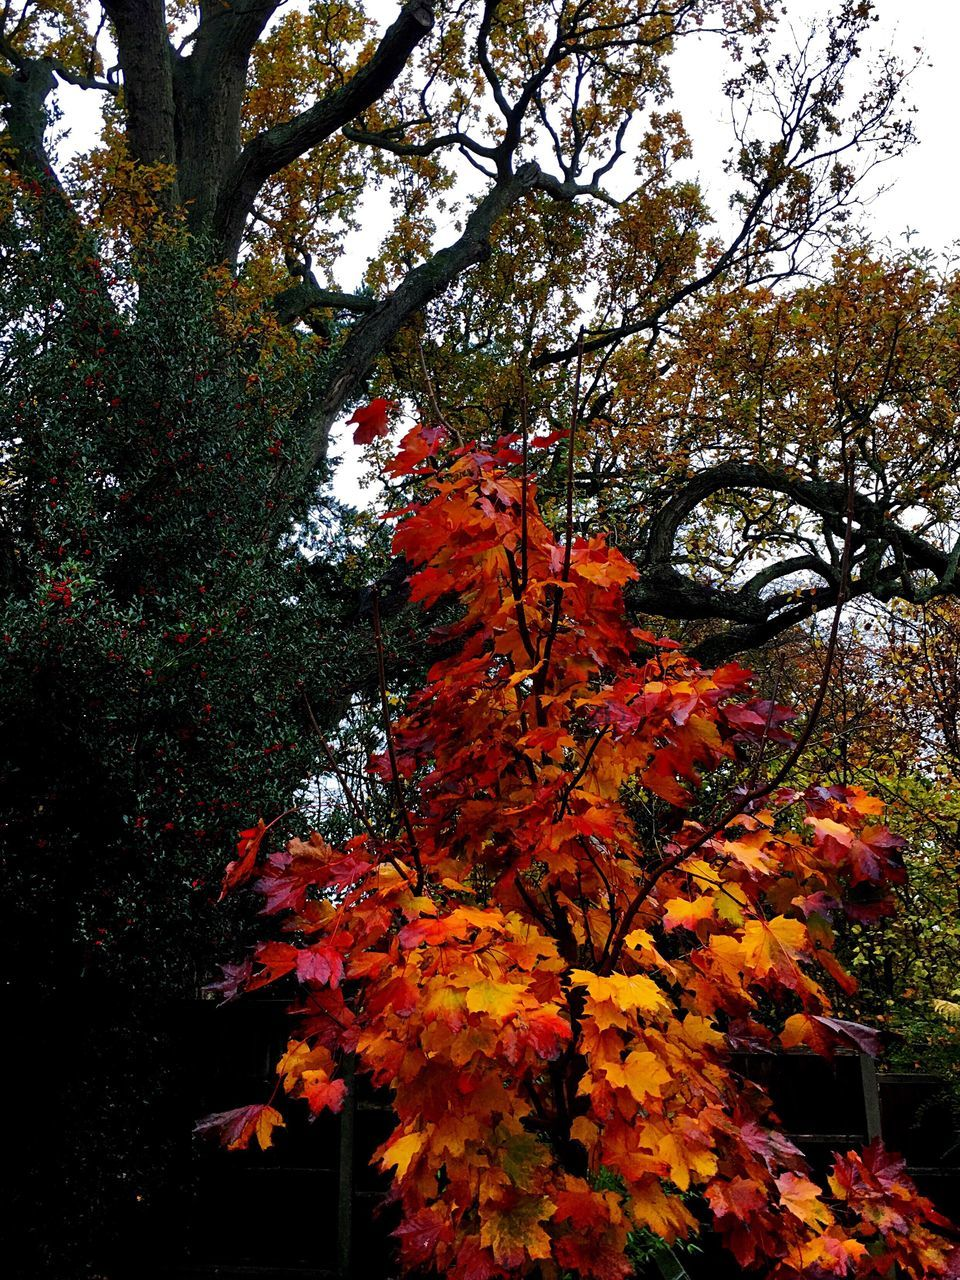 autumn, tree, change, leaf, orange color, nature, growth, maple leaf, branch, maple tree, beauty in nature, low angle view, no people, day, foliage, maple, outdoors, close-up